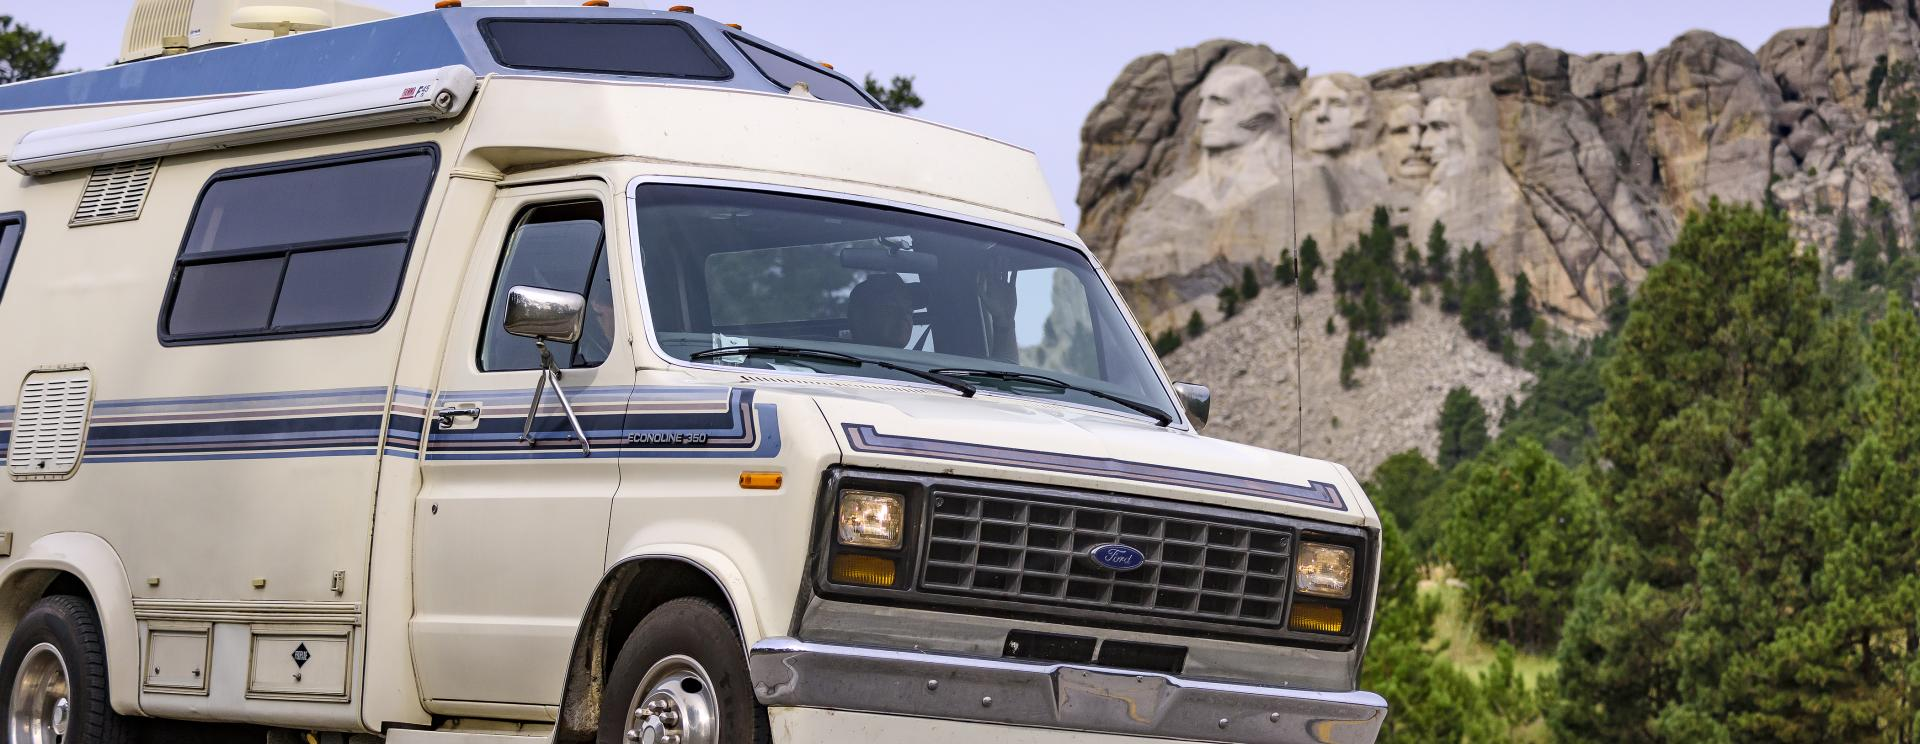 How to Make the Most of the Road to Mount Rushmore | 3-Day Itinerary